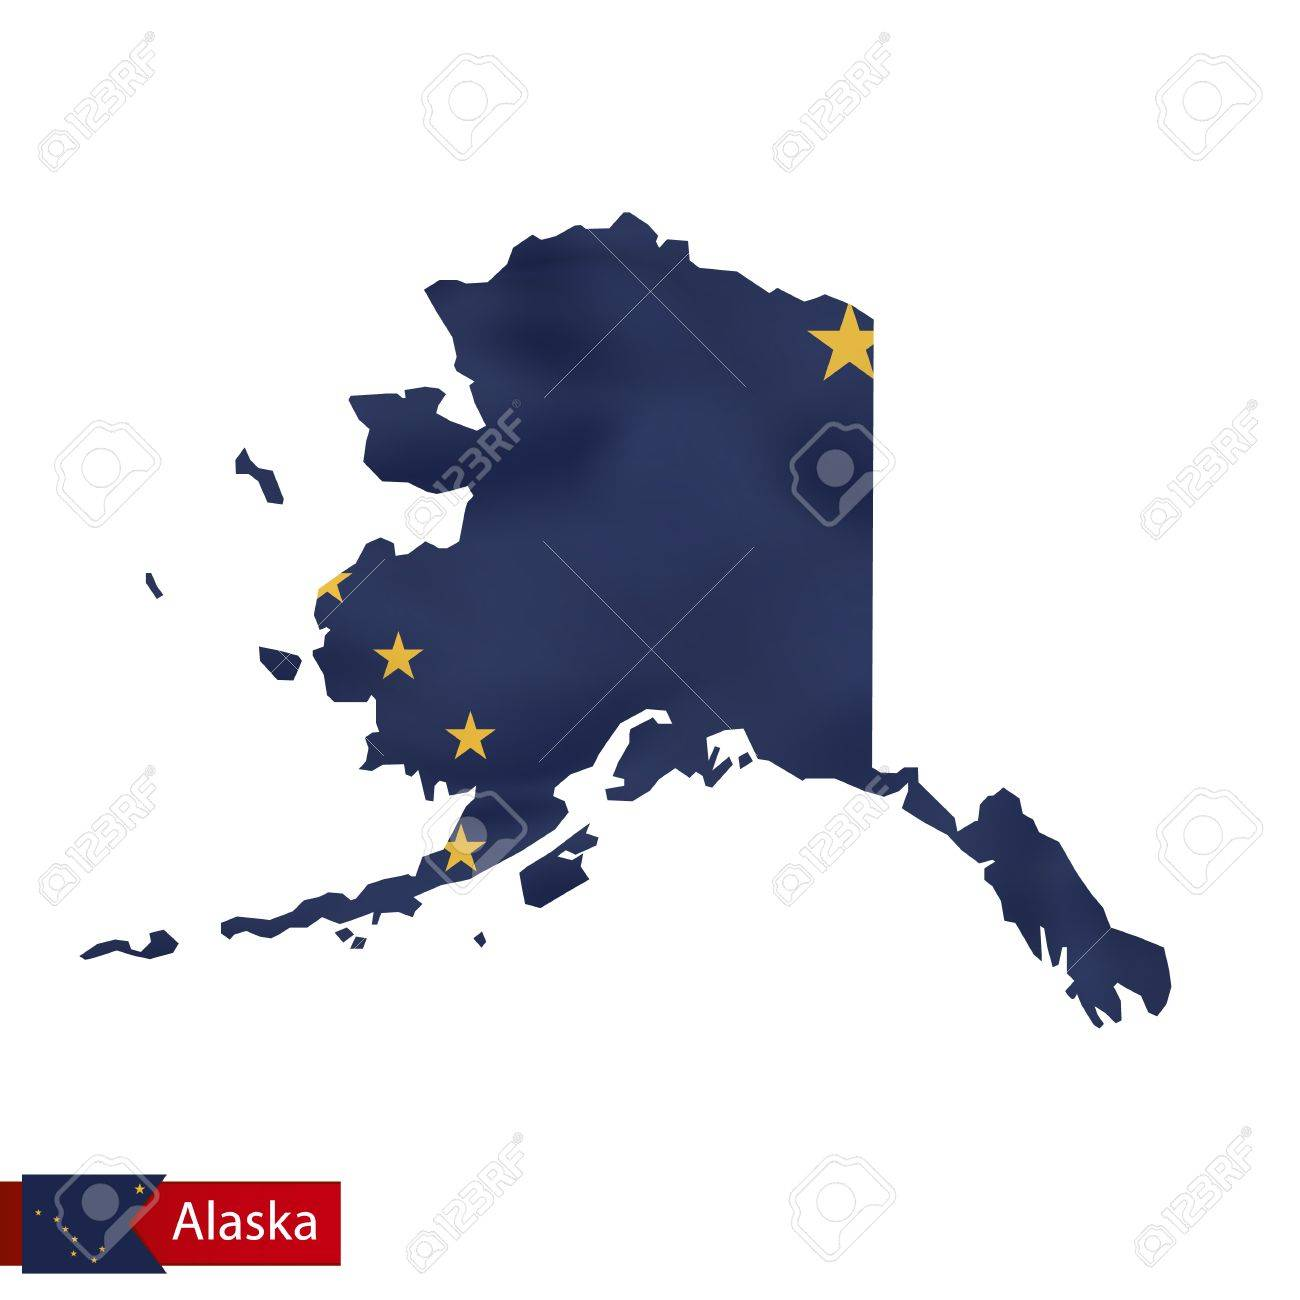 Alaska State Map With Waving Flag Of Us State Vector Illustration - Map-of-alaska-over-the-us